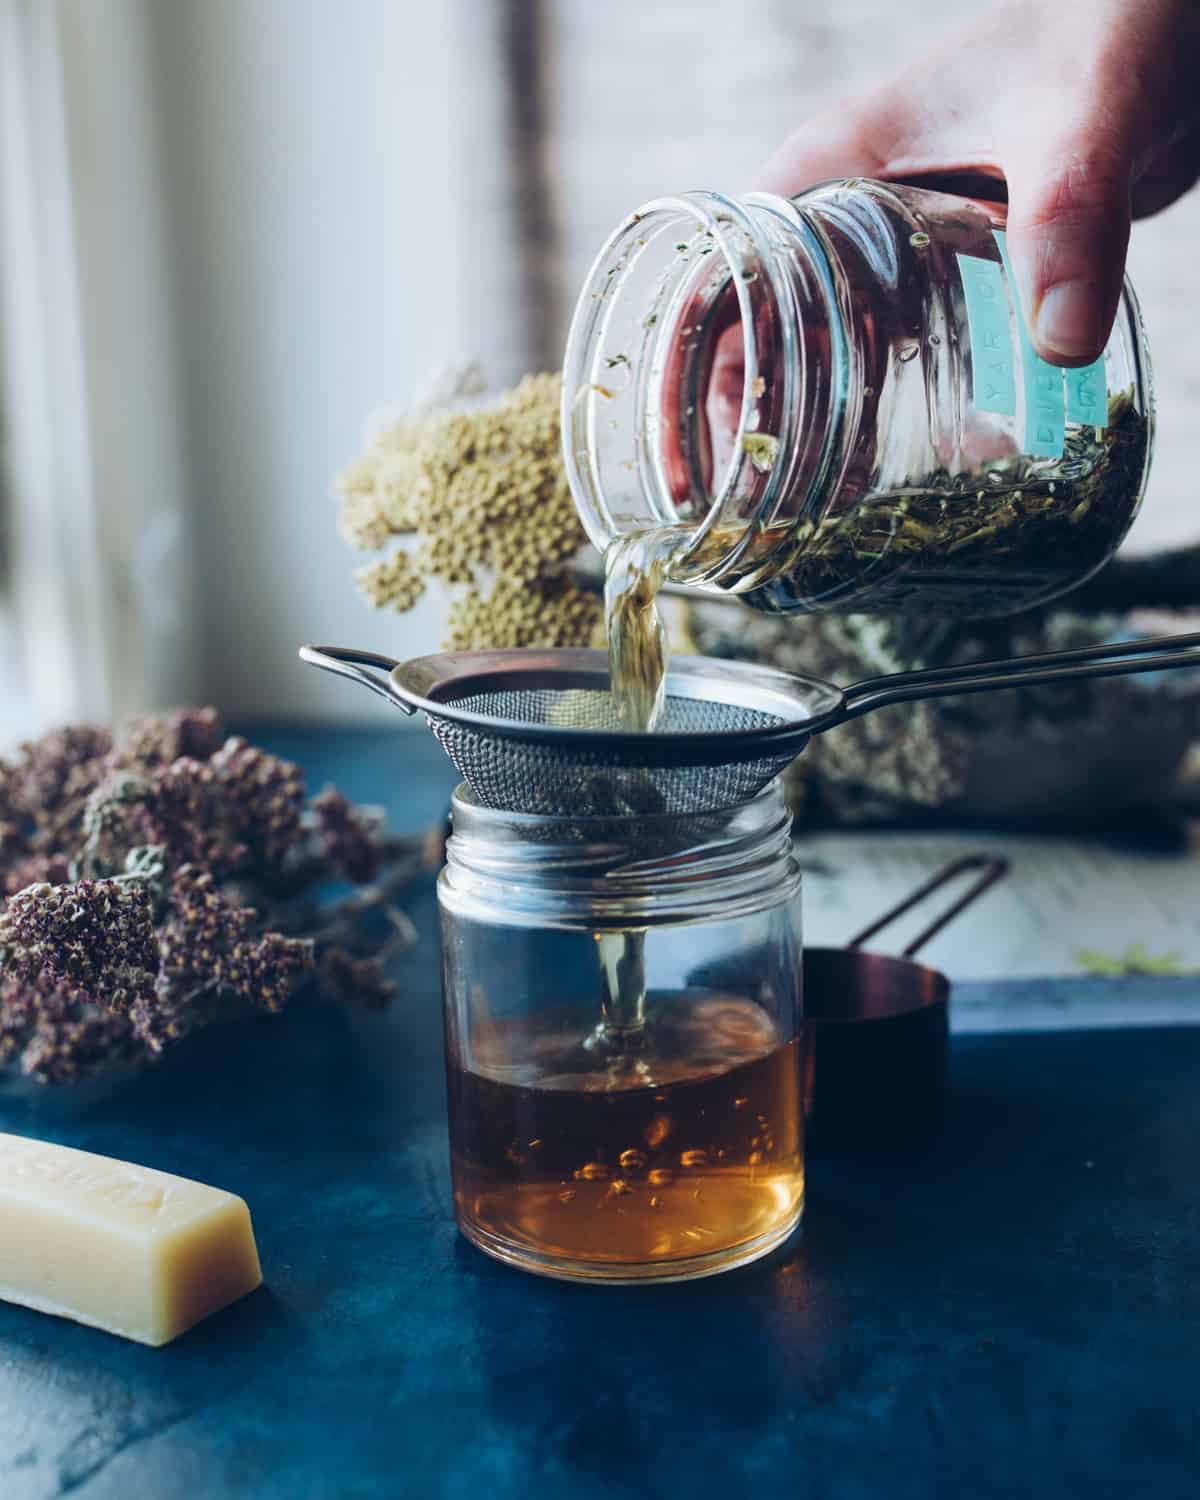 Jar of yarrow flower infused tea water, pouring into a strainer held by a clear jar. The jar is half full of strained yarrow water. On a dark blue counter top, with dried yarrow flowers and a stick of beeswax in the background.